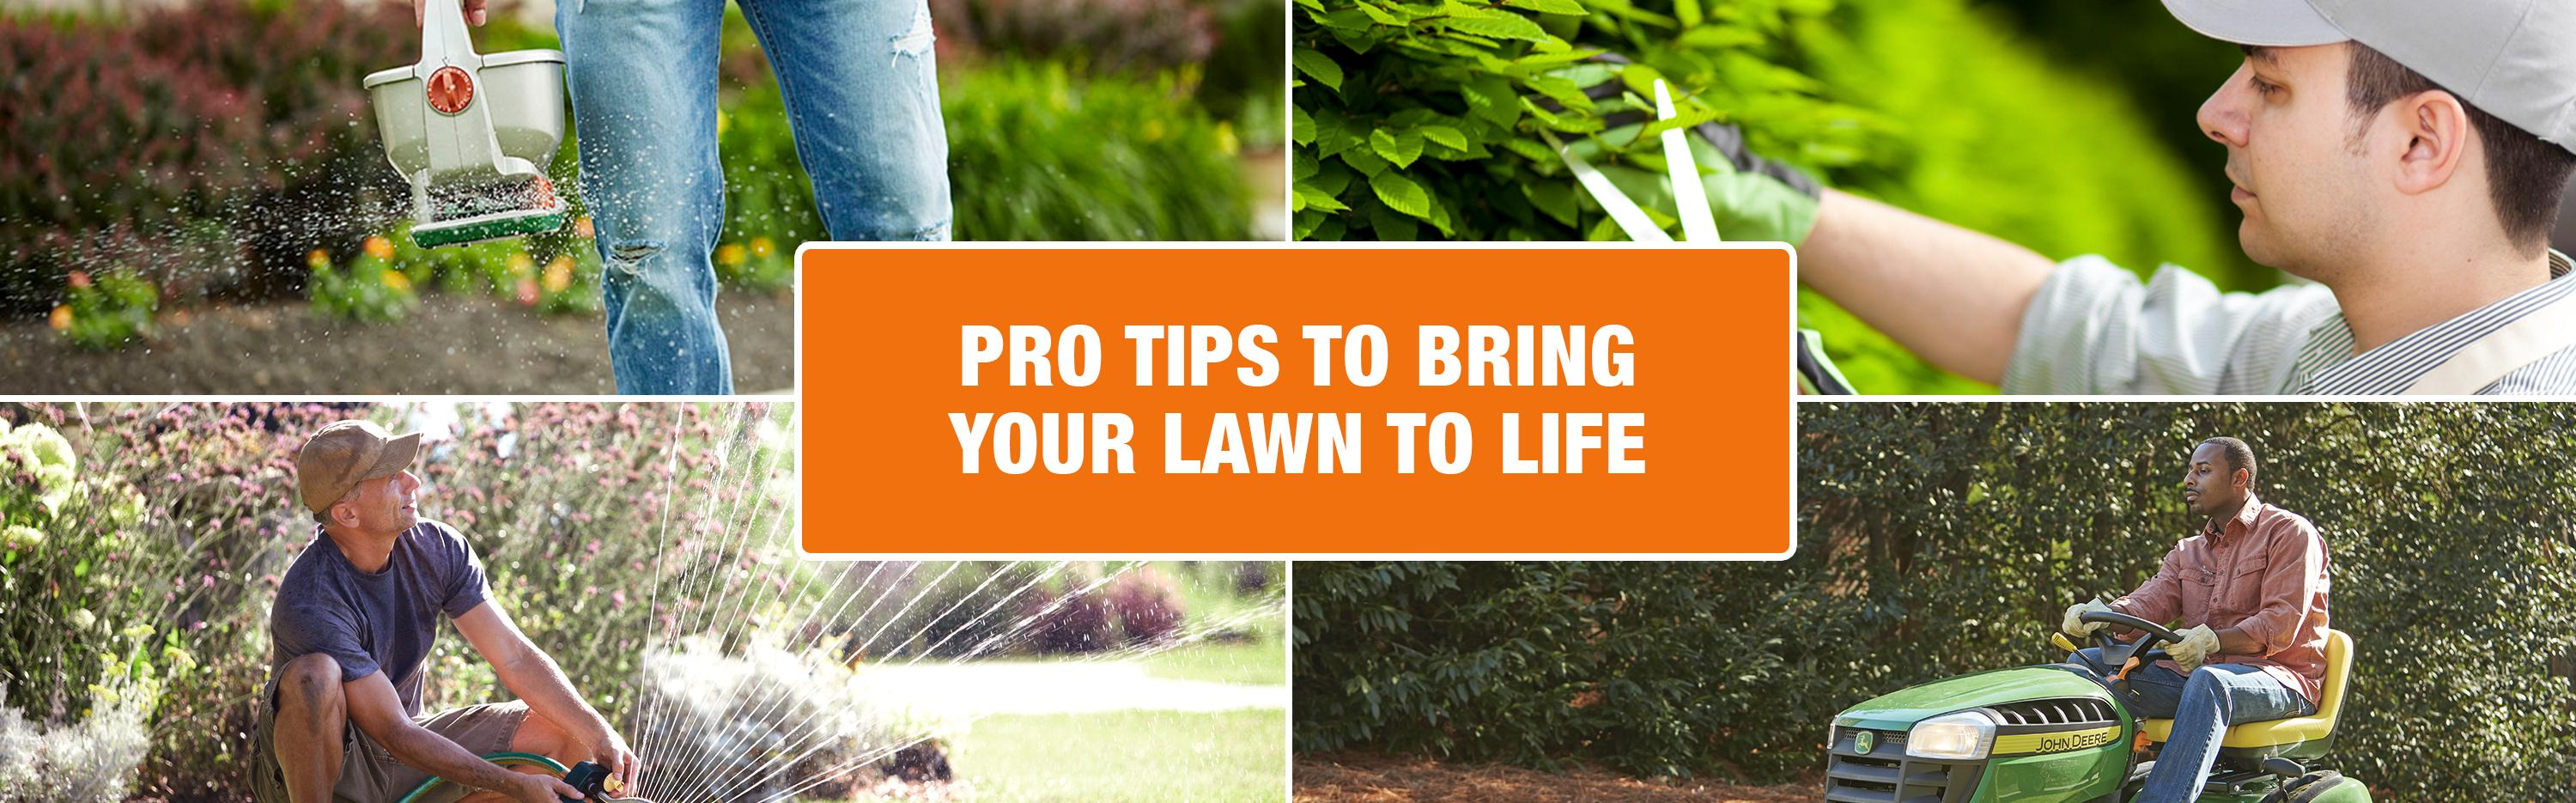 Improve your lawn care with these tips